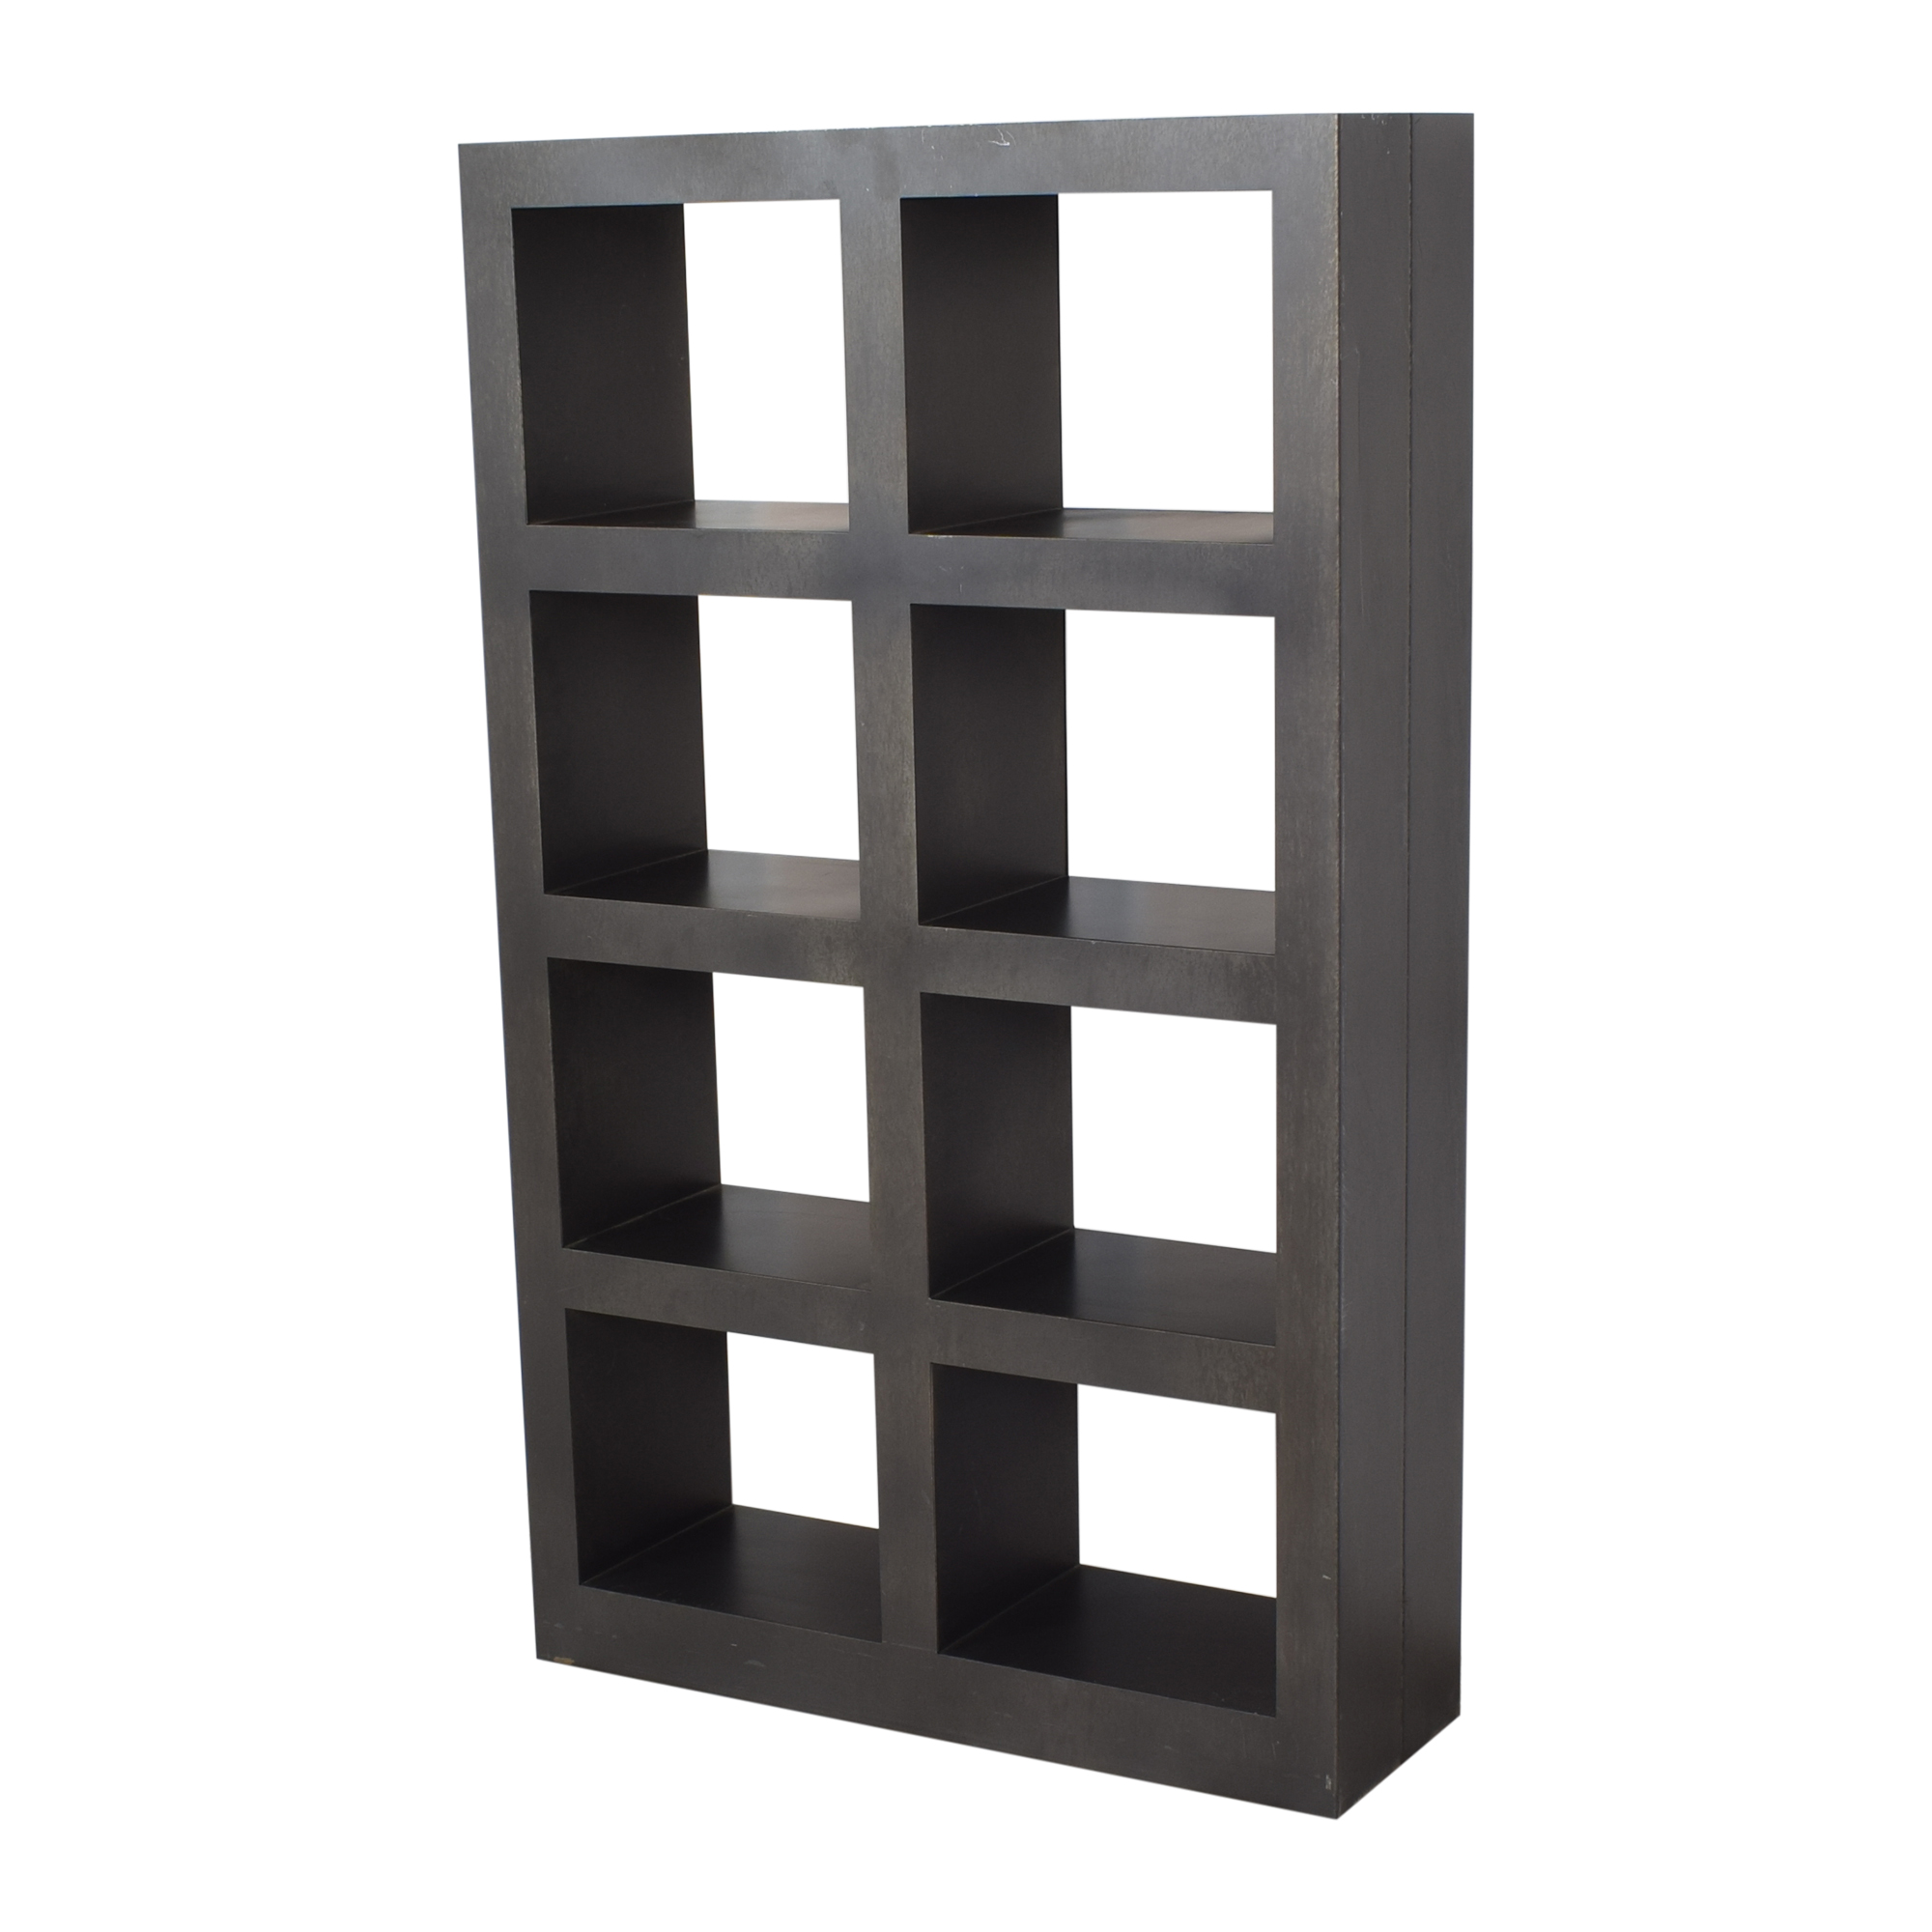 buy Crate & Barrel Shadow Box Tower Crate & Barrel Bookcases & Shelving